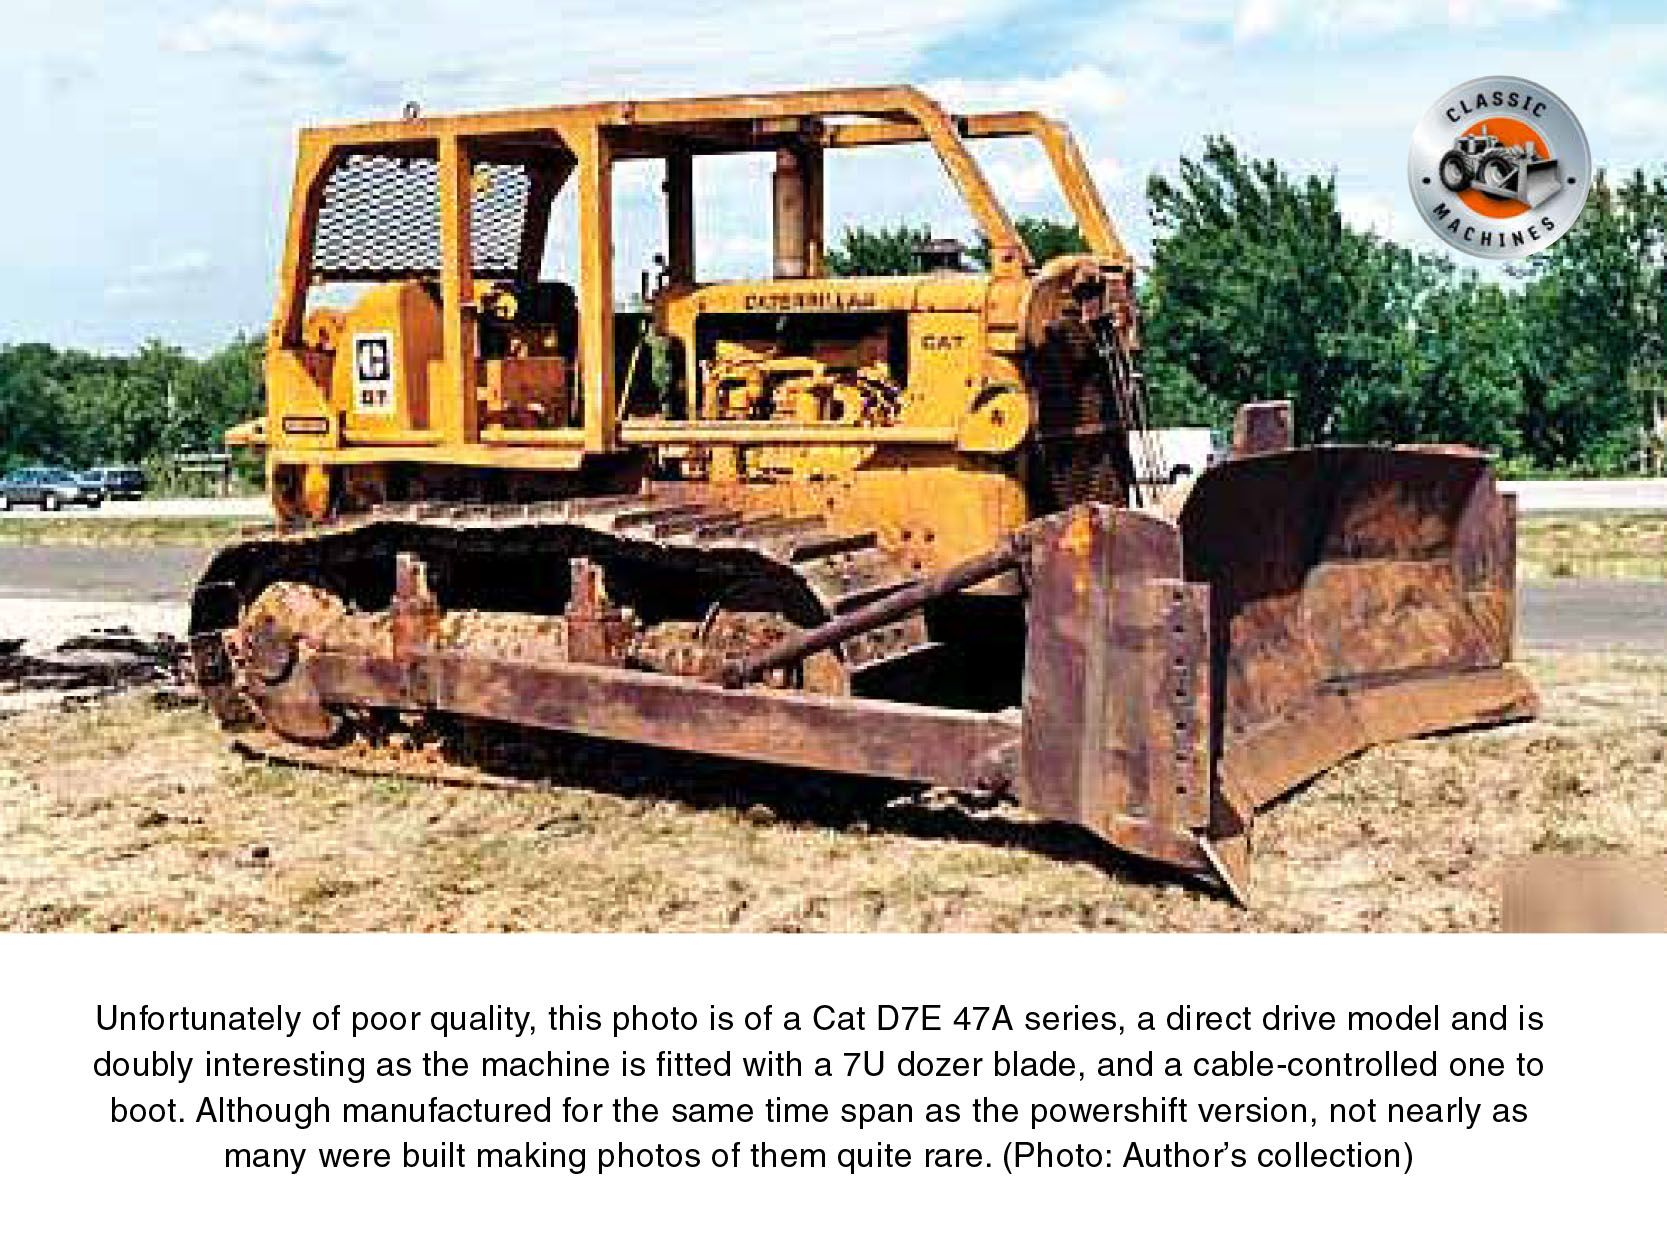 Unfortunately of poor quality, this photo is of a Cat D7E